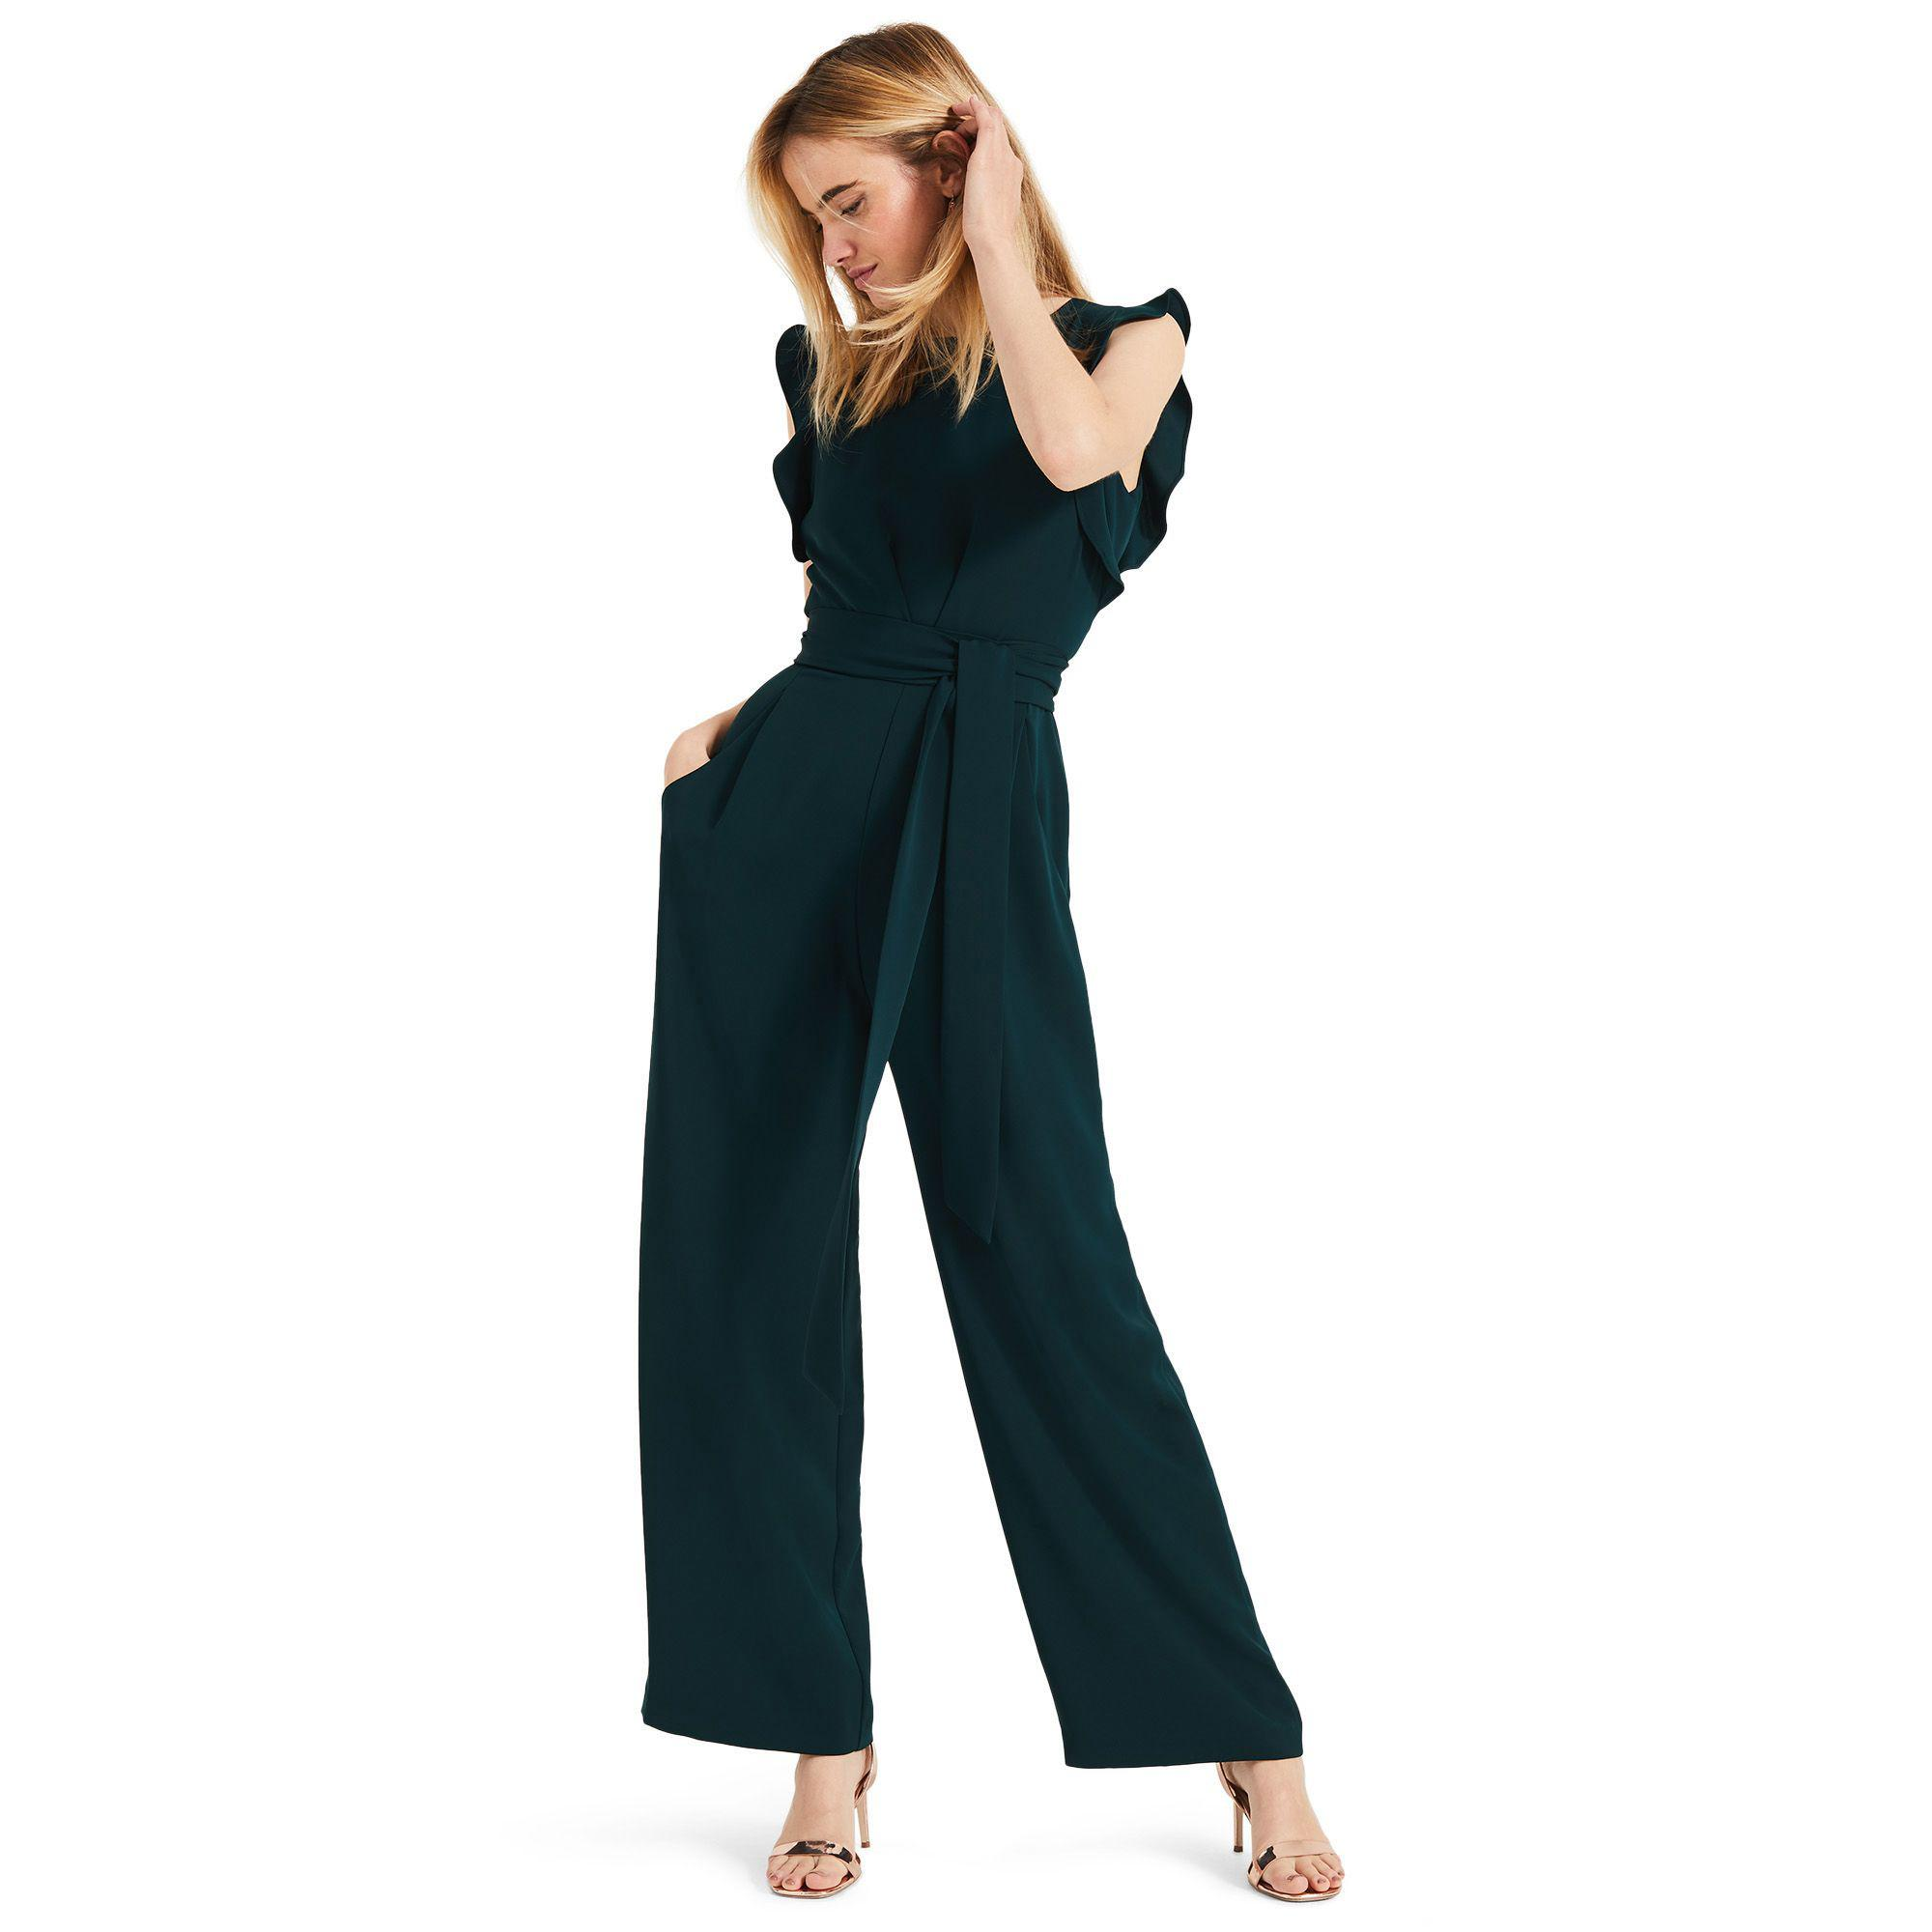 2c9de4df28 Phase Eight Green Victoriana Jumpsuit in Green - Lyst